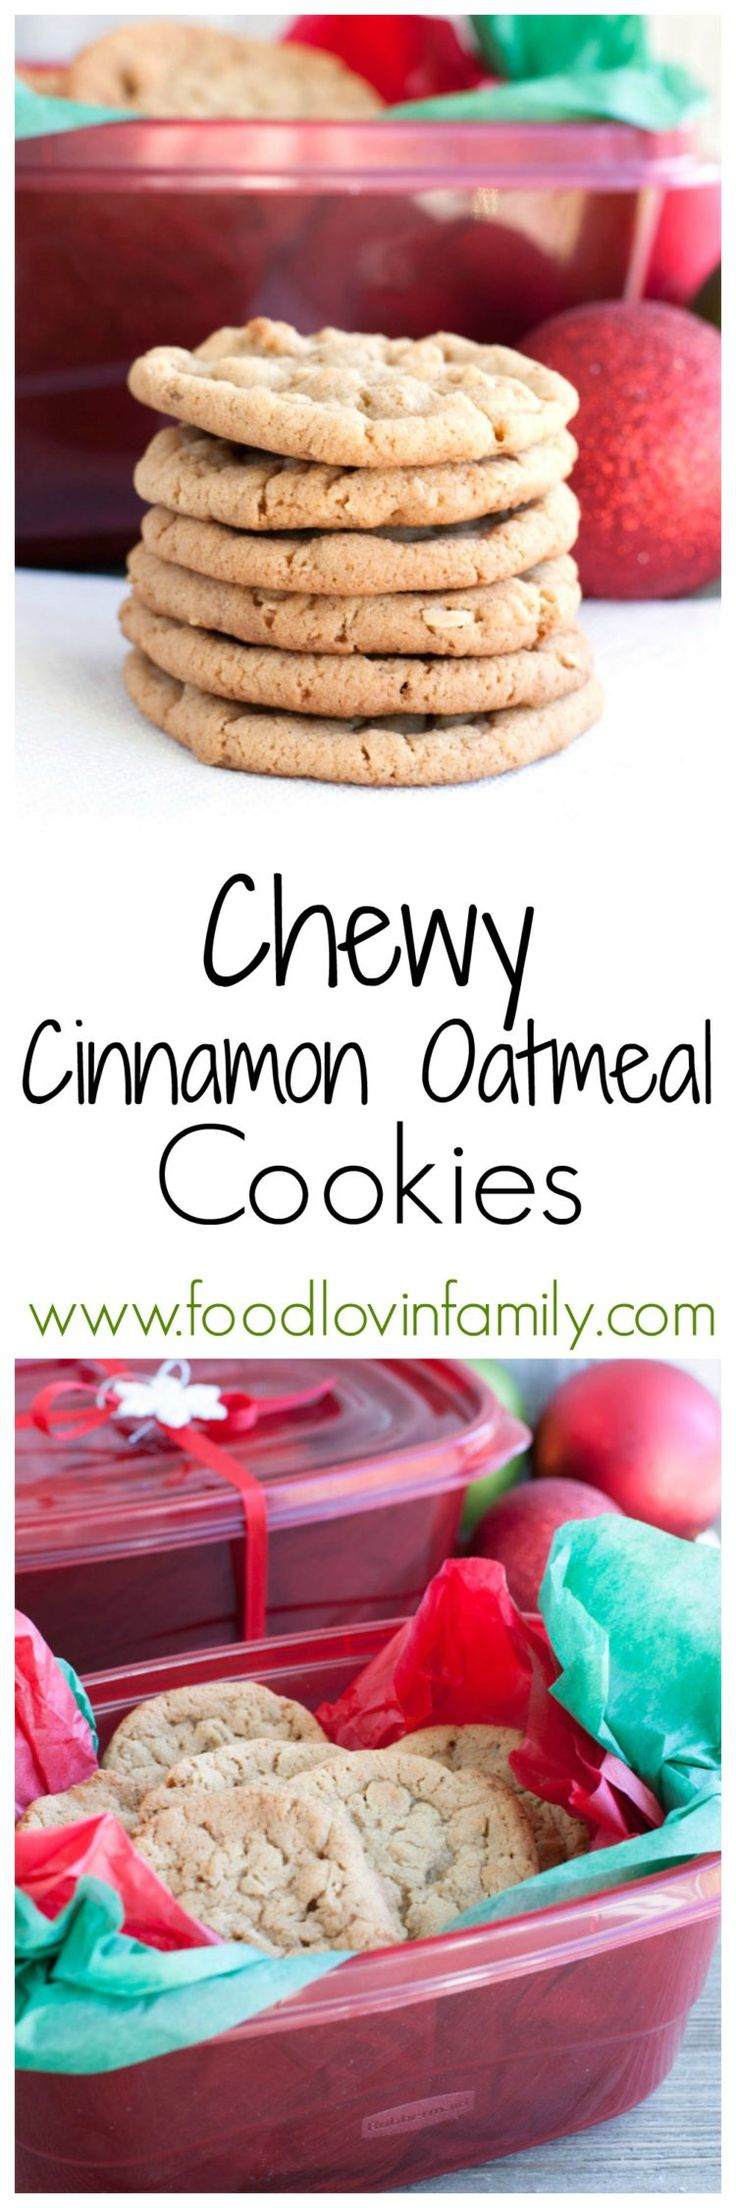 Chewy Cinnamon Oatmeal Cookies are delightfully chewy with a hint of cinnamon. Easy to make and a great base cookie. Make some for friends and family! #ad #ShareTheHoliday @Walmart | http://www.foodlovinfamily.com/chewy-cinnamon-oatmeal-cookies/